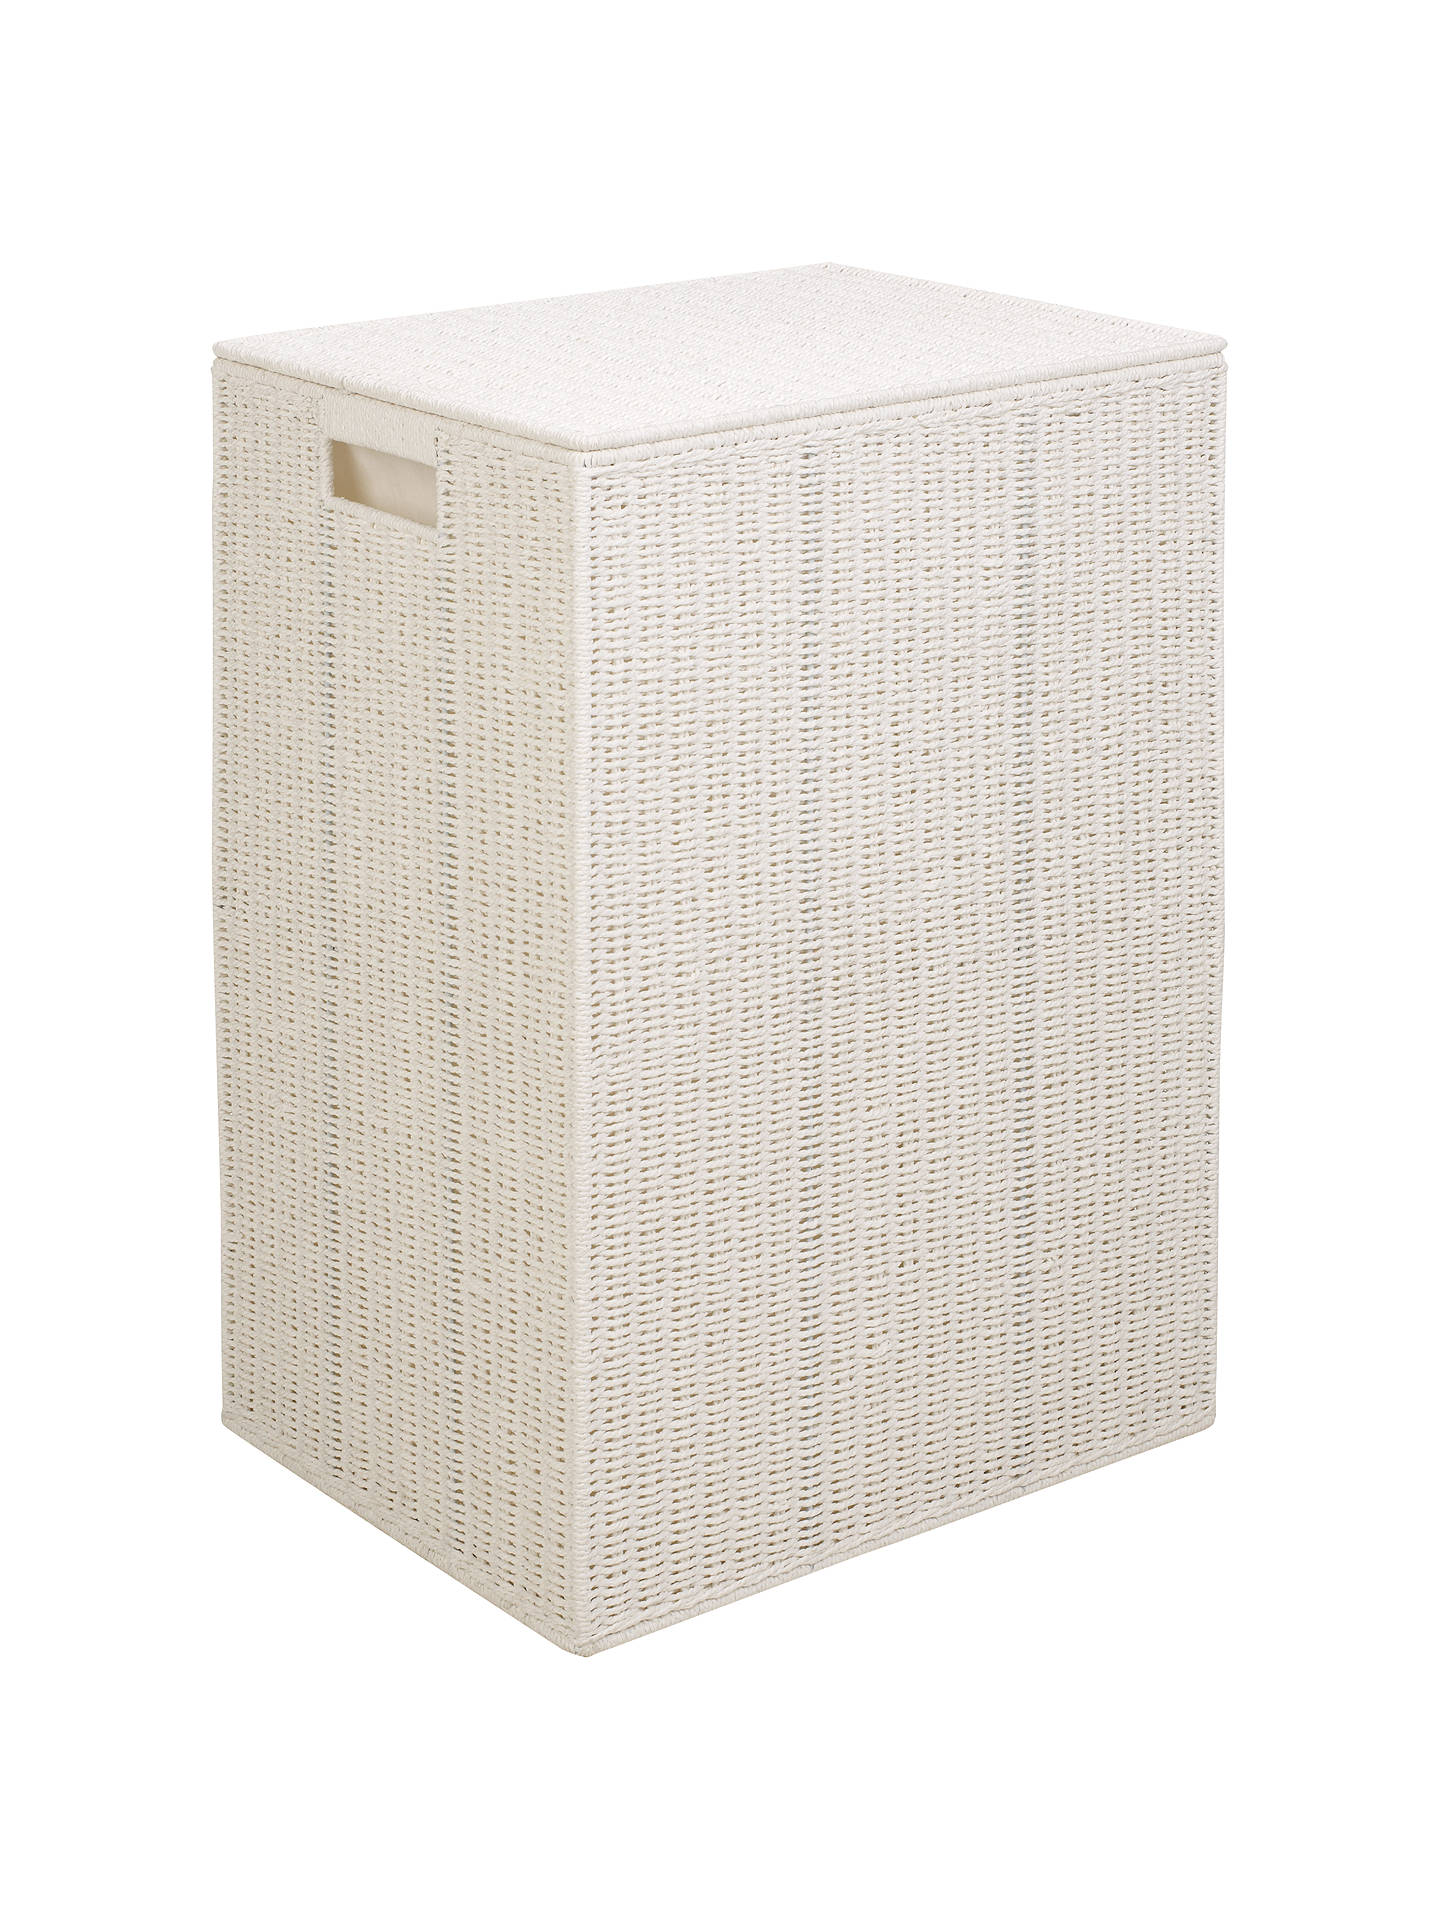 Buy John Lewis & Partners & Partners Rope Double Laundry Bin, White Online at johnlewis.com